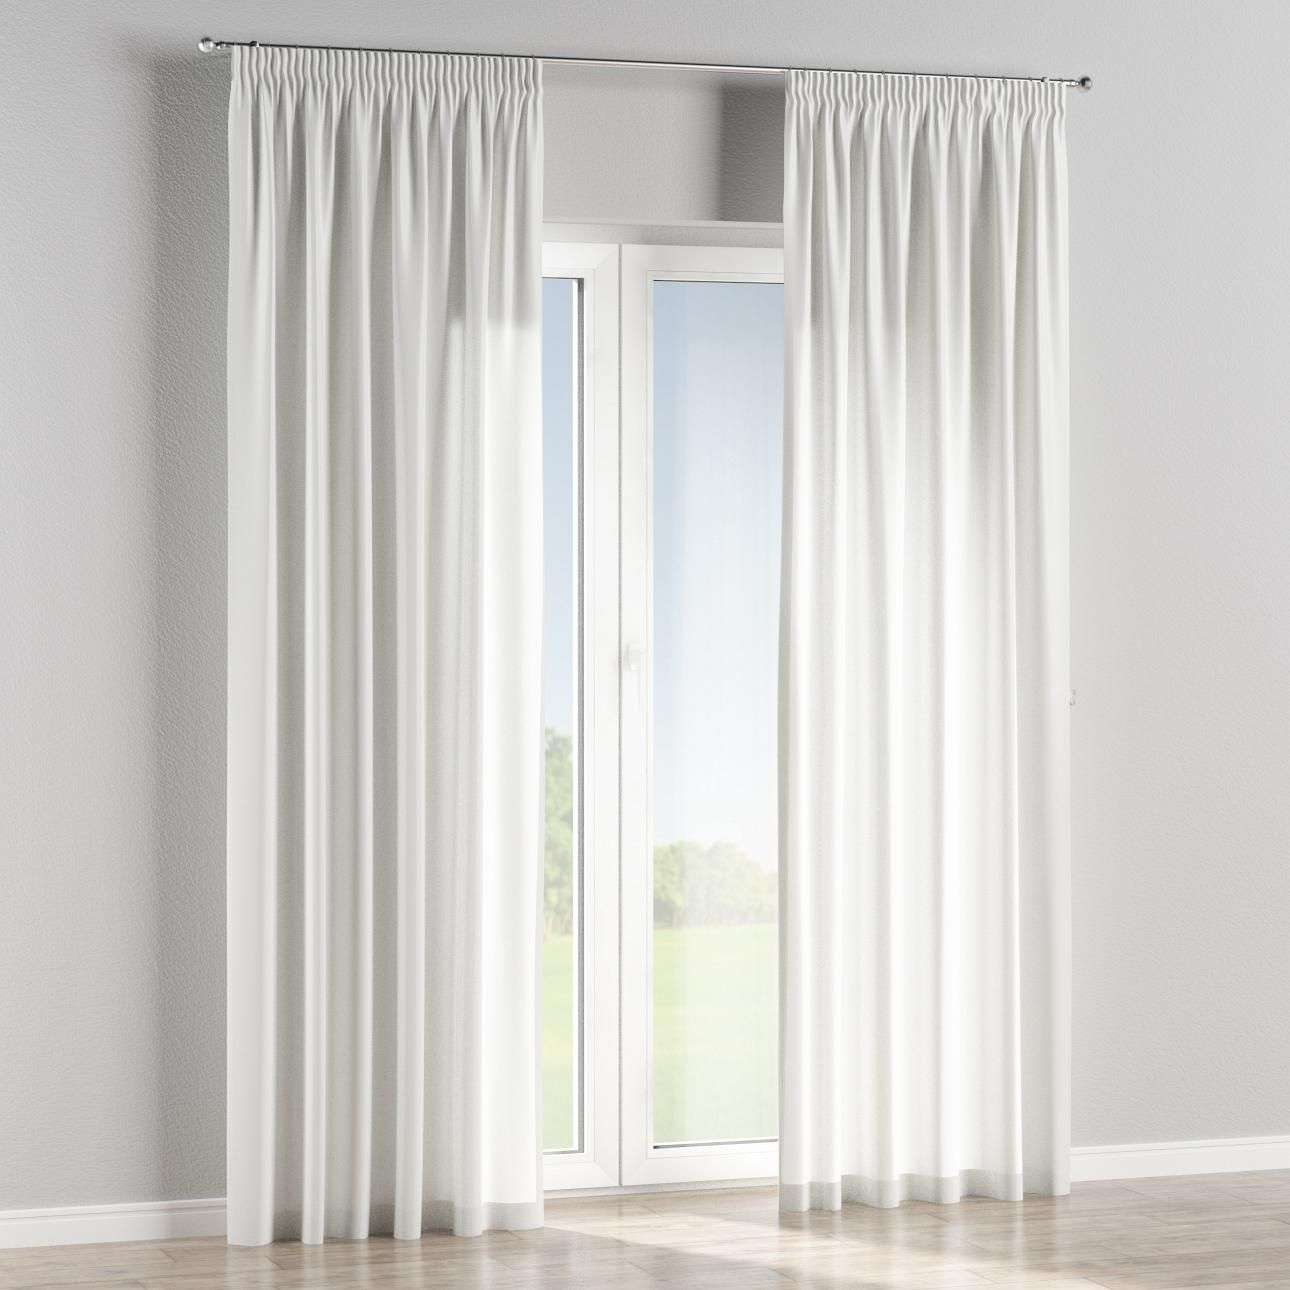 Pencil pleat curtains in collection Bristol, fabric: 126-48